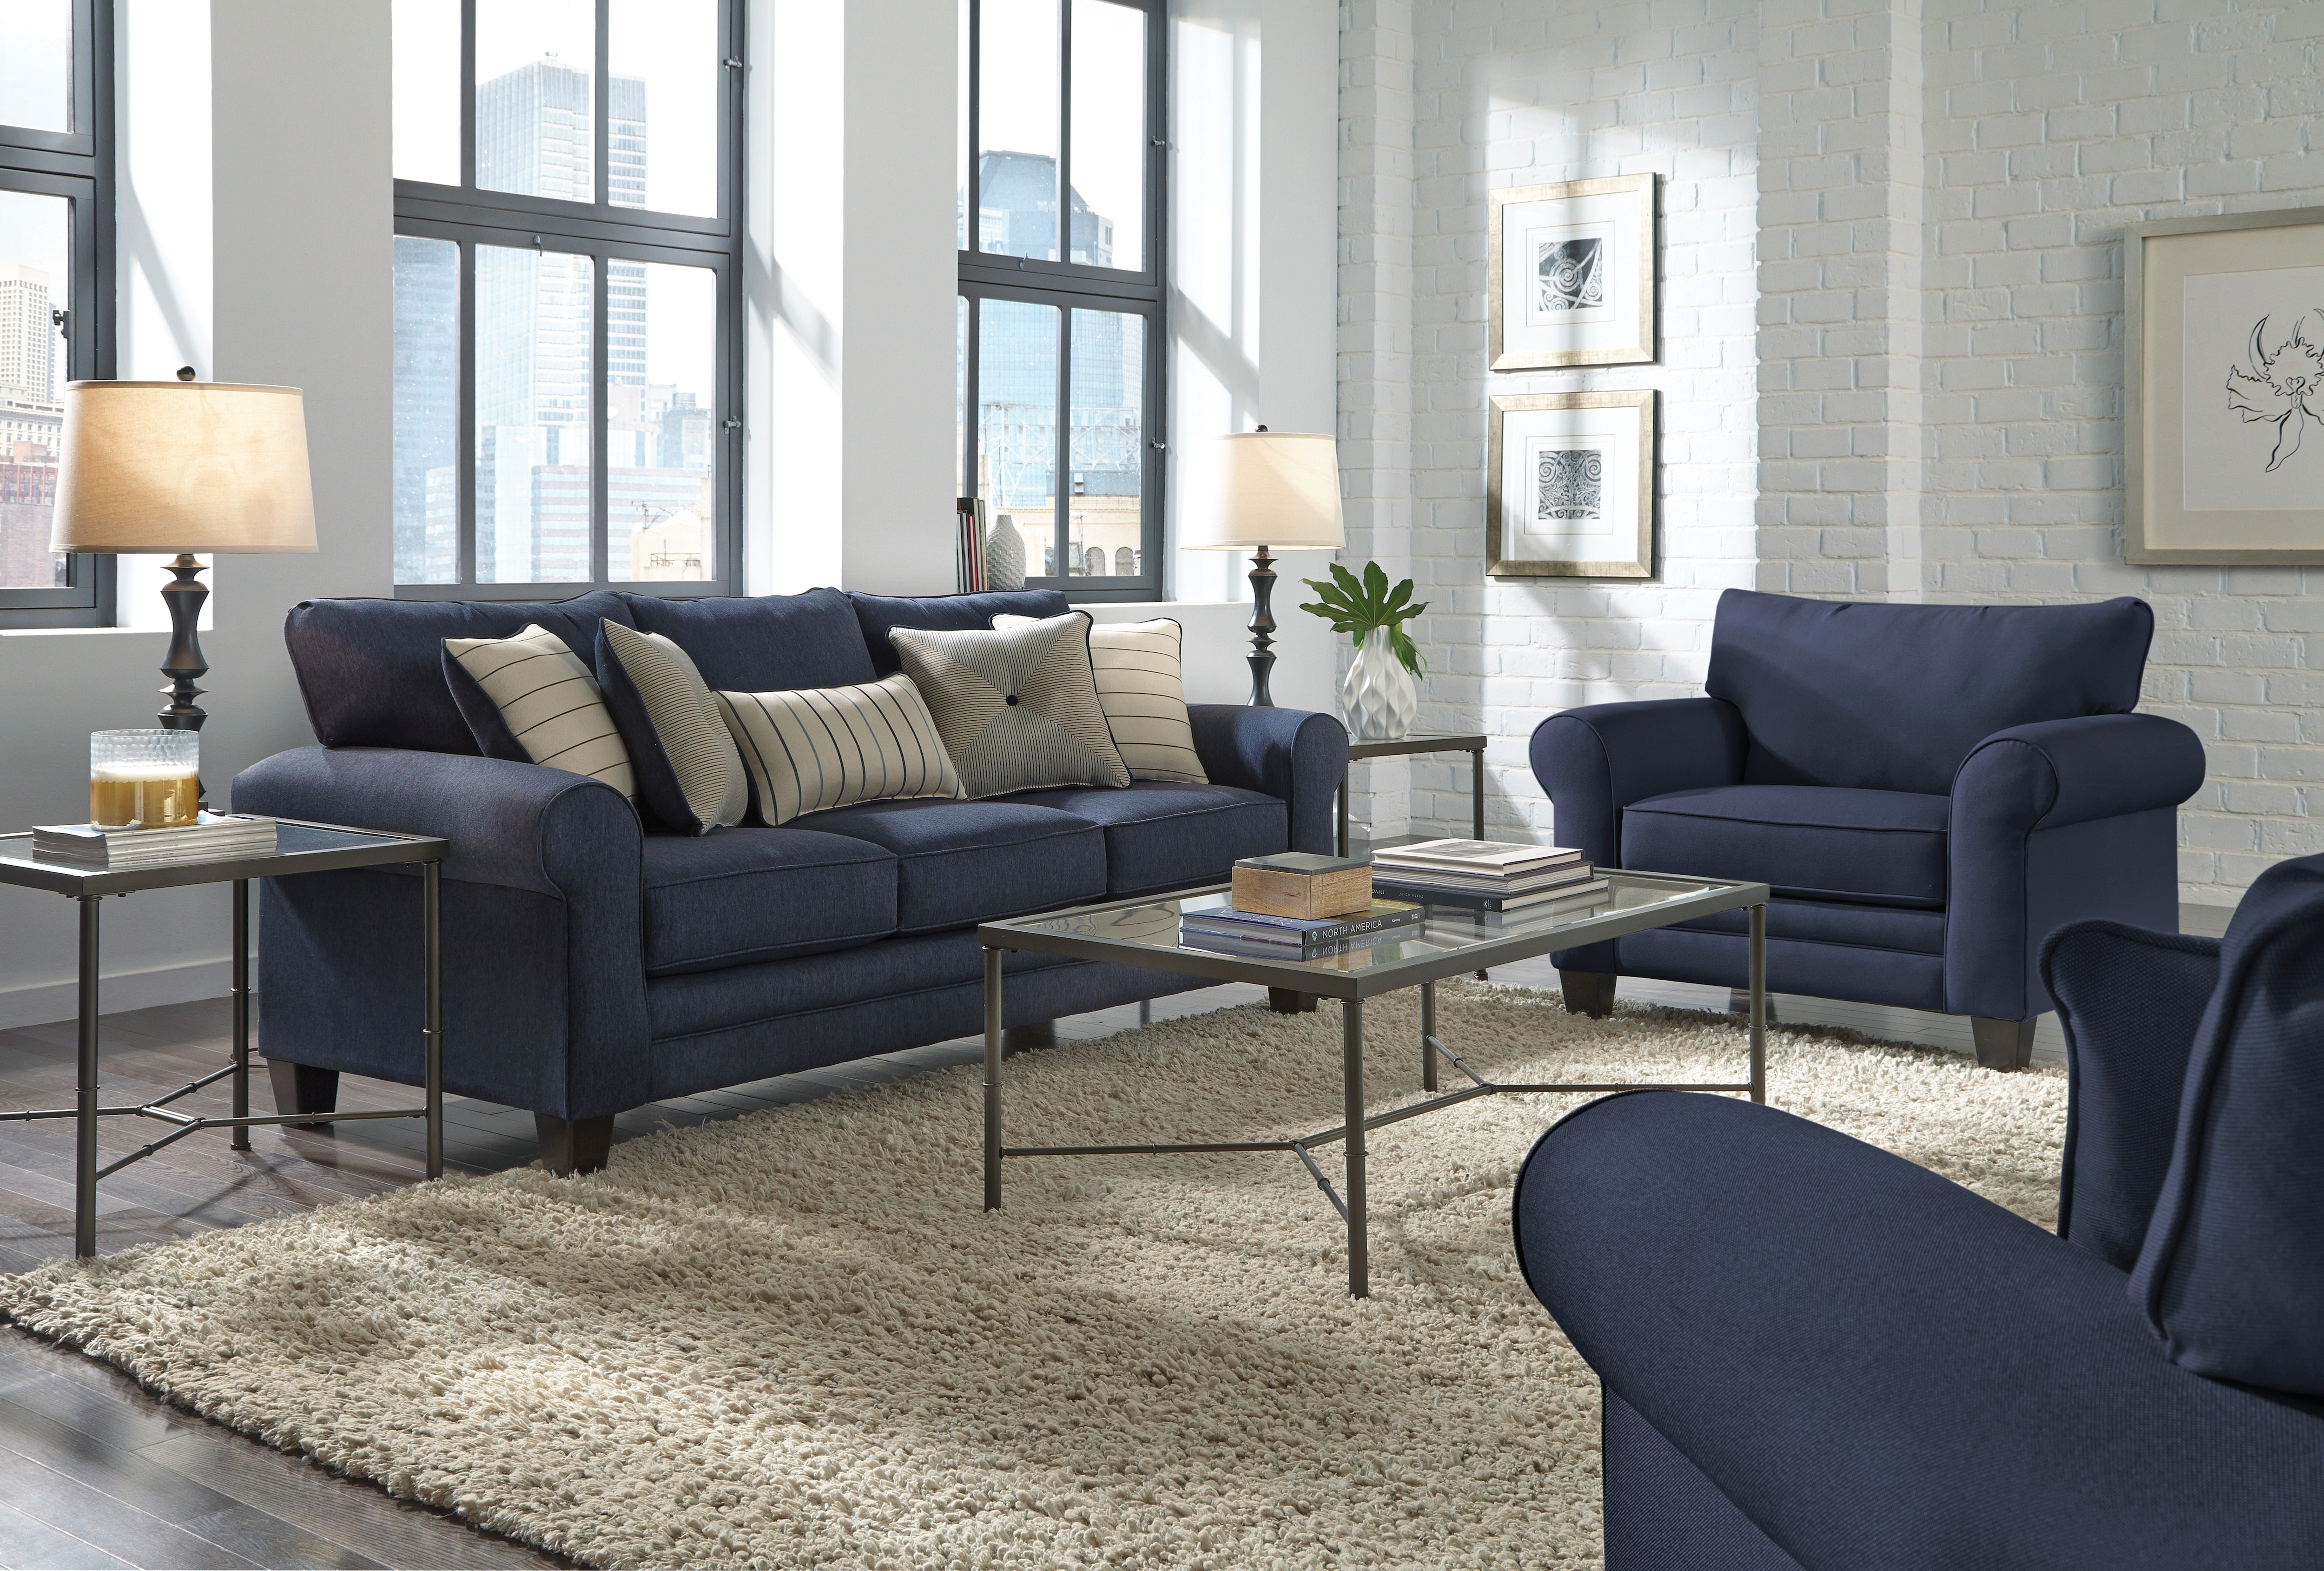 navy sofa living room aspire sofa navy levin furniture 15771